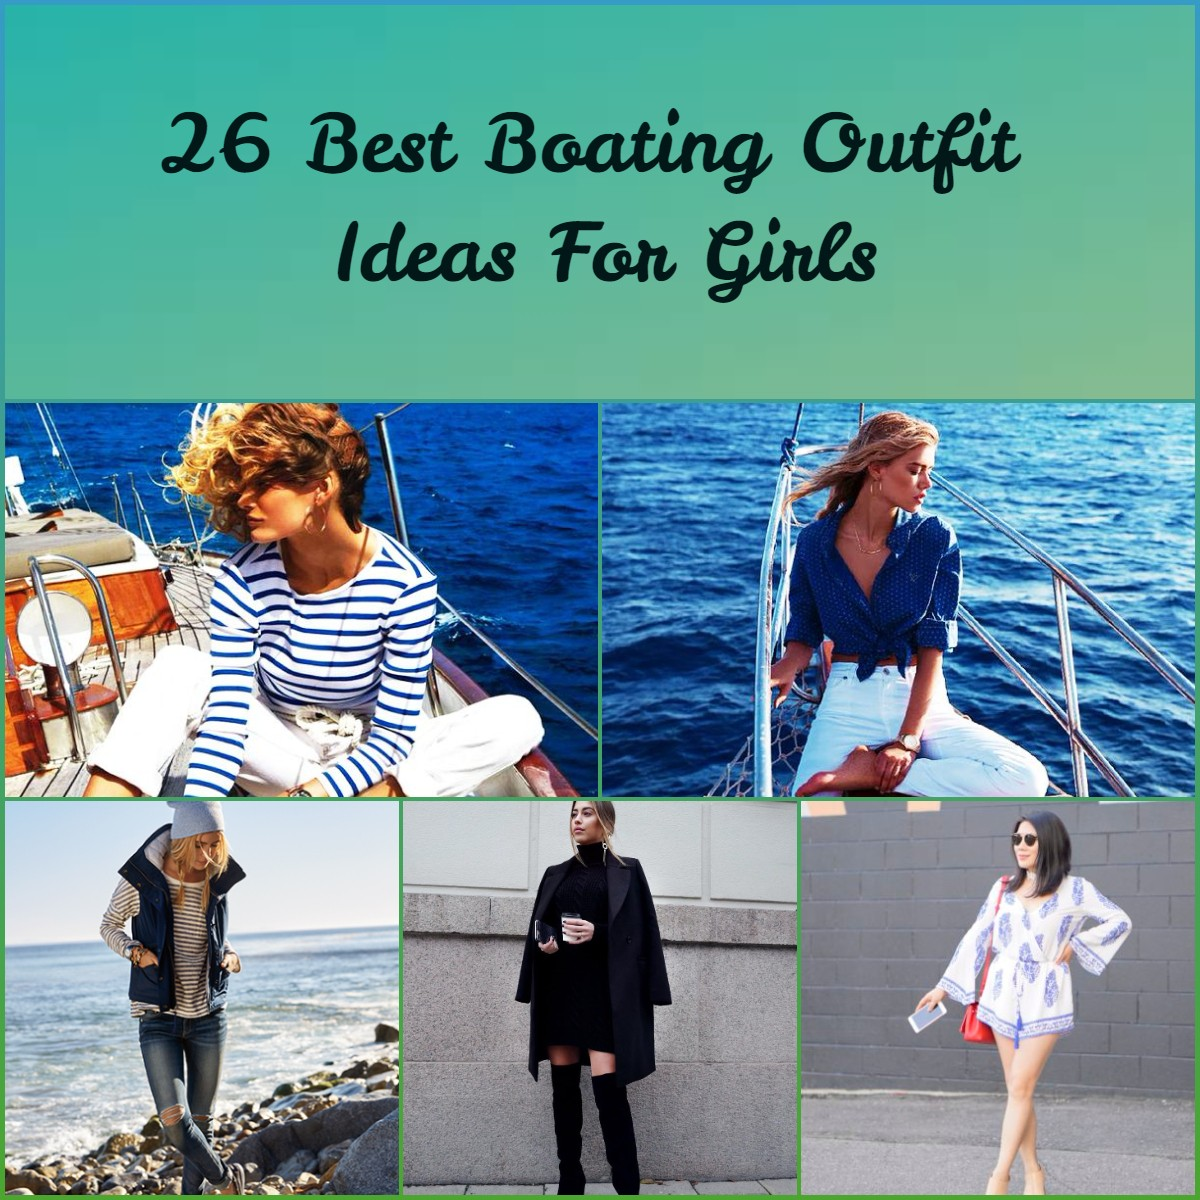 FotoJet-4 26 Best Boating Outfit Ideas for Girls-What to Wear On a Boat